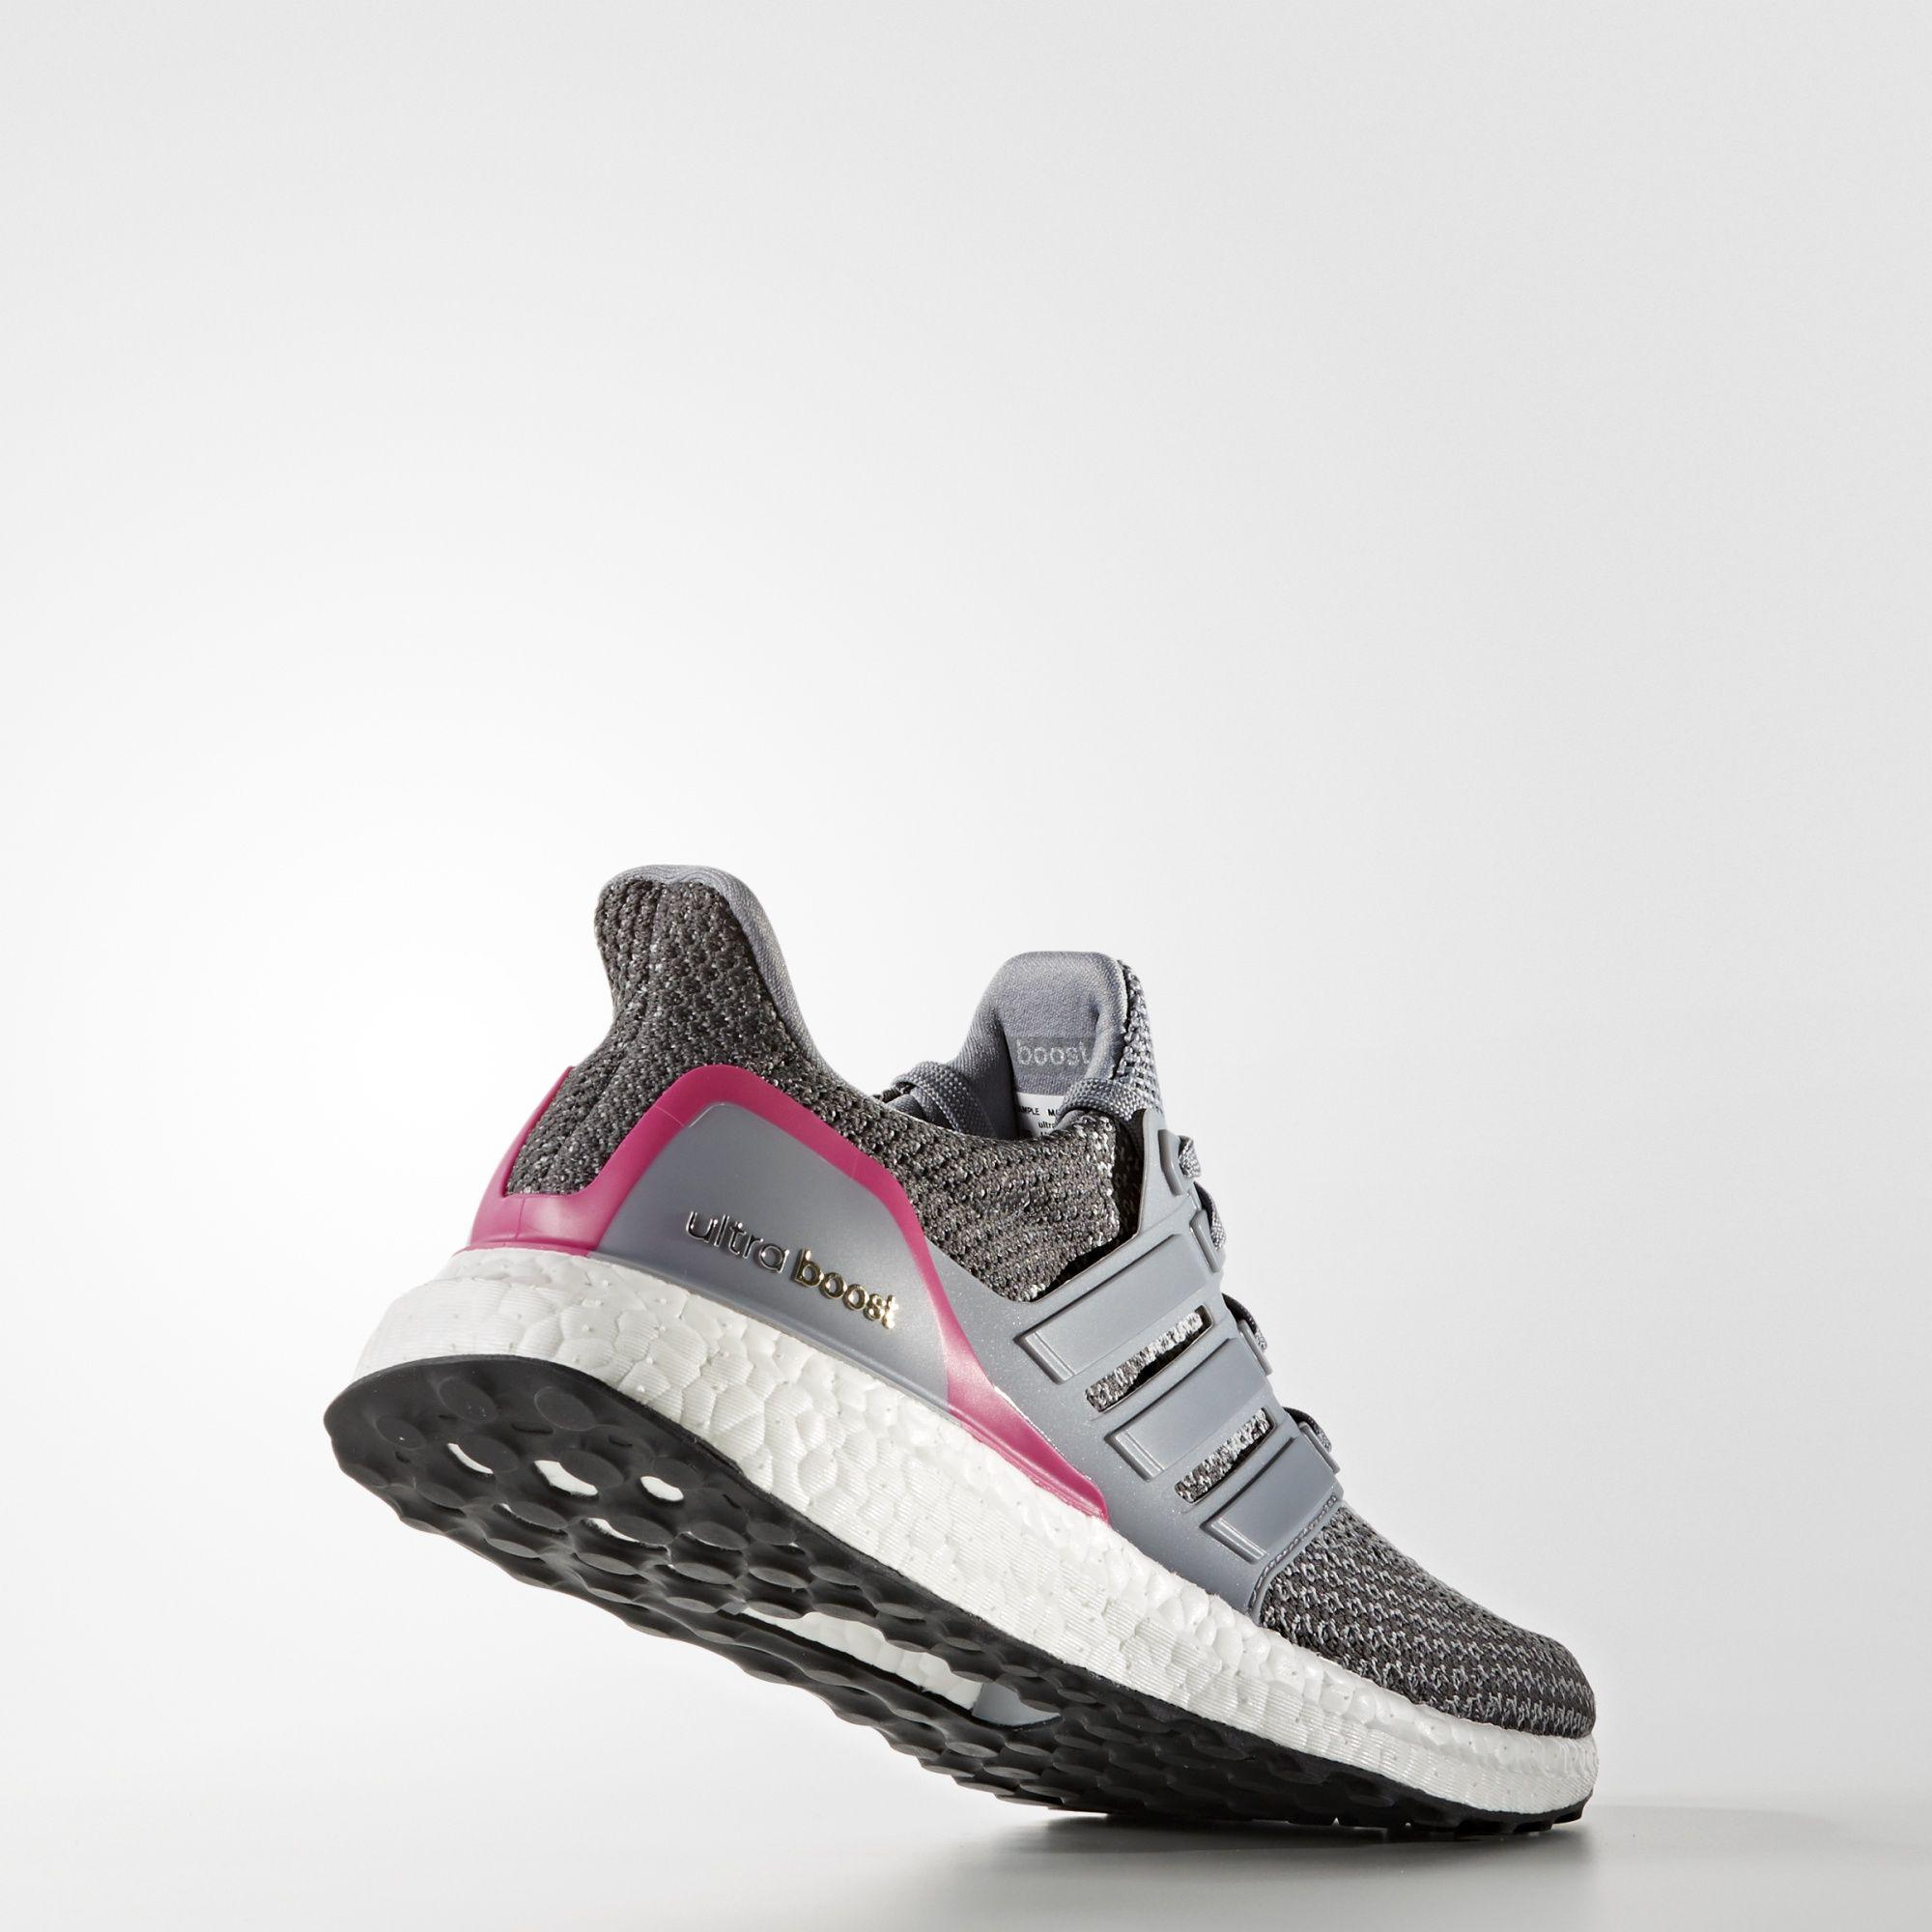 82b42982c Adidas Womens Ultra Boost Running Shoes - Grey Pink - Tennisnuts.com